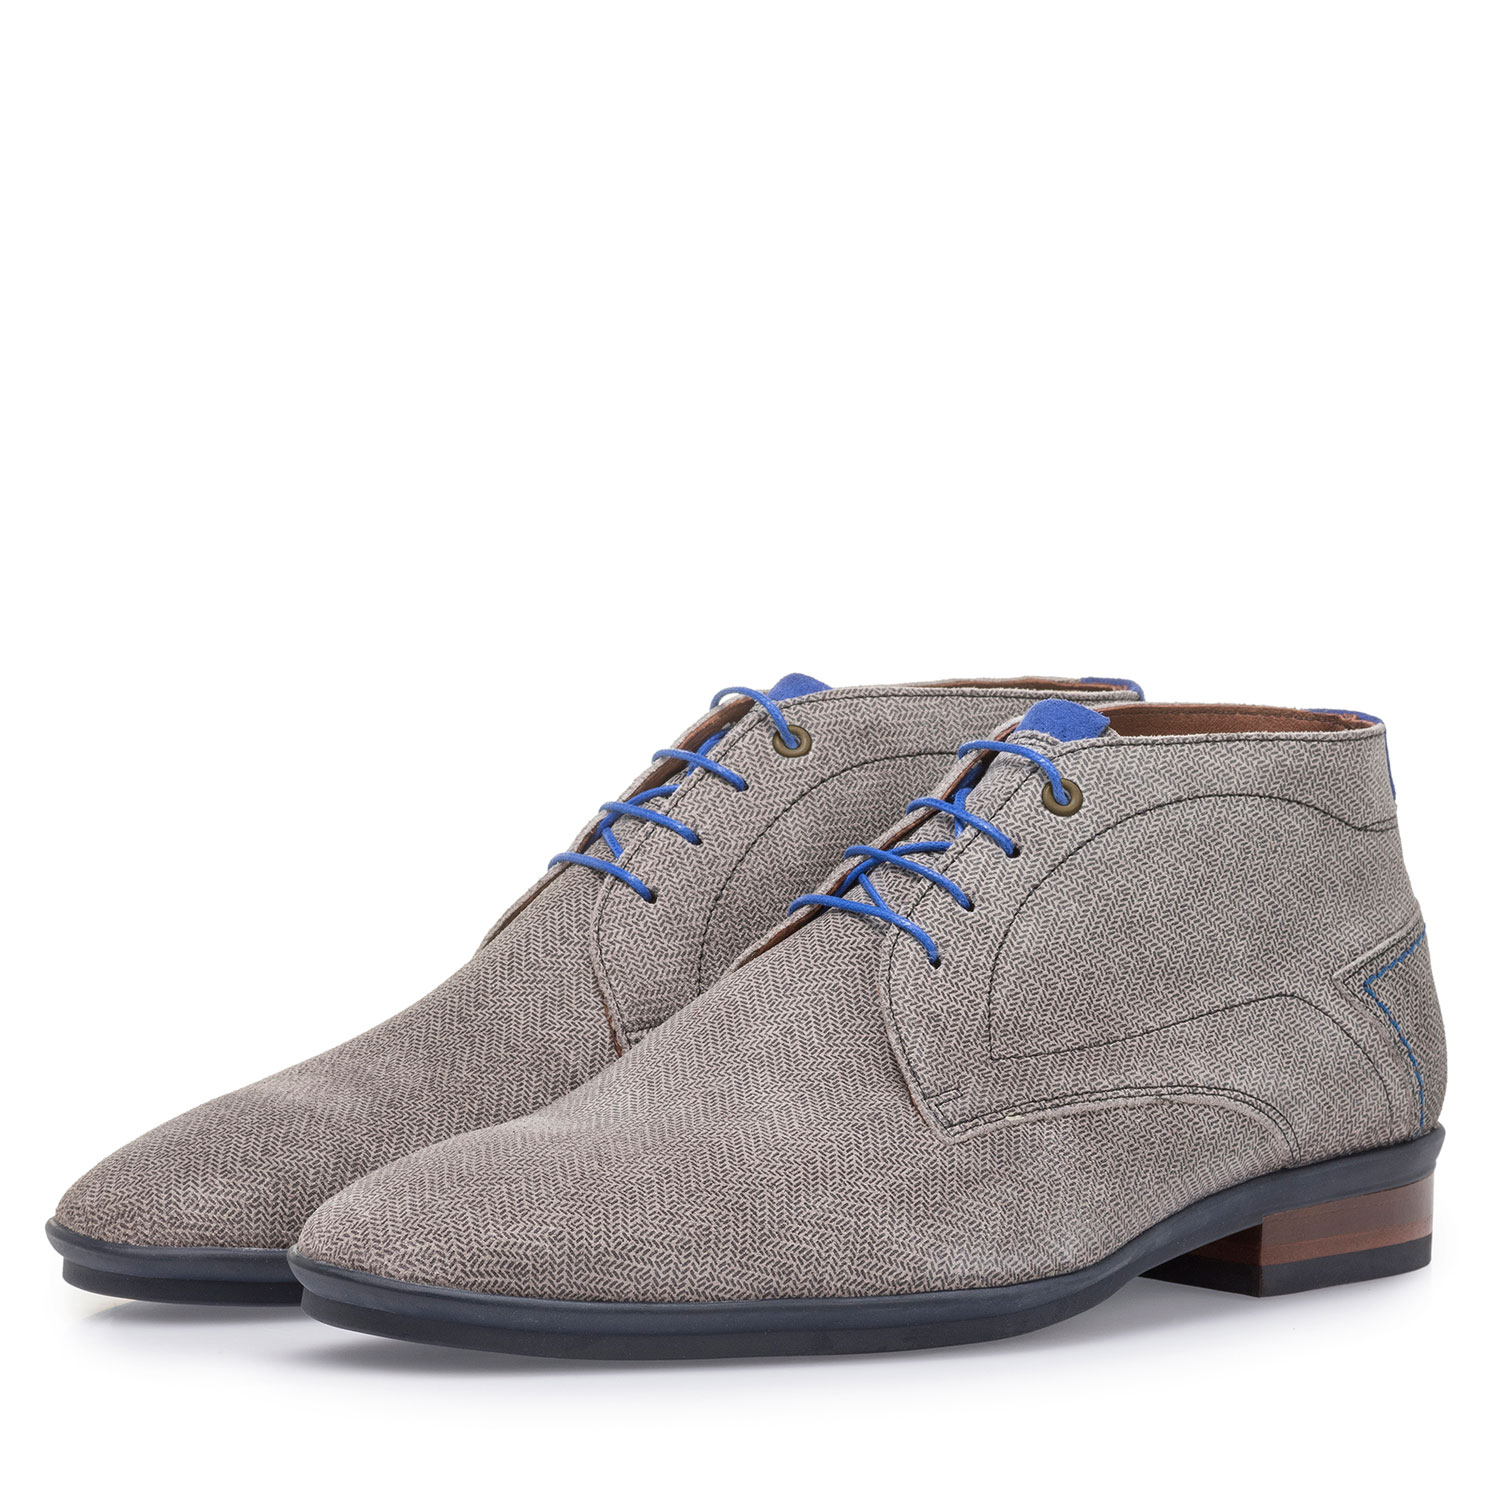 20440/08 - Light grey suede leather lace boot with print